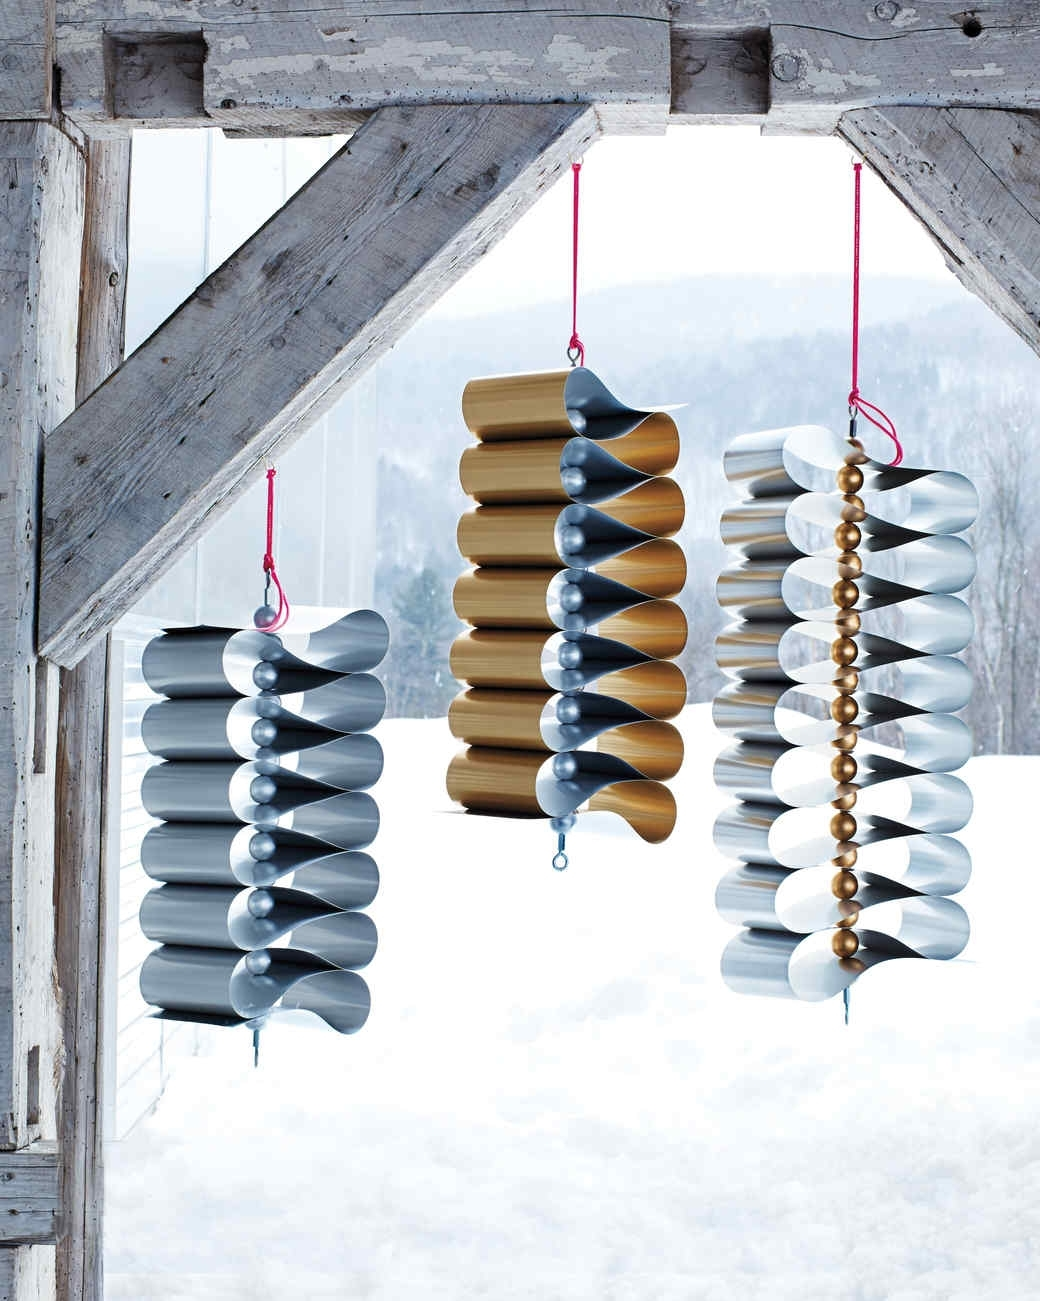 12 Outdoor Christmas Decorations To Make Your Home Festive